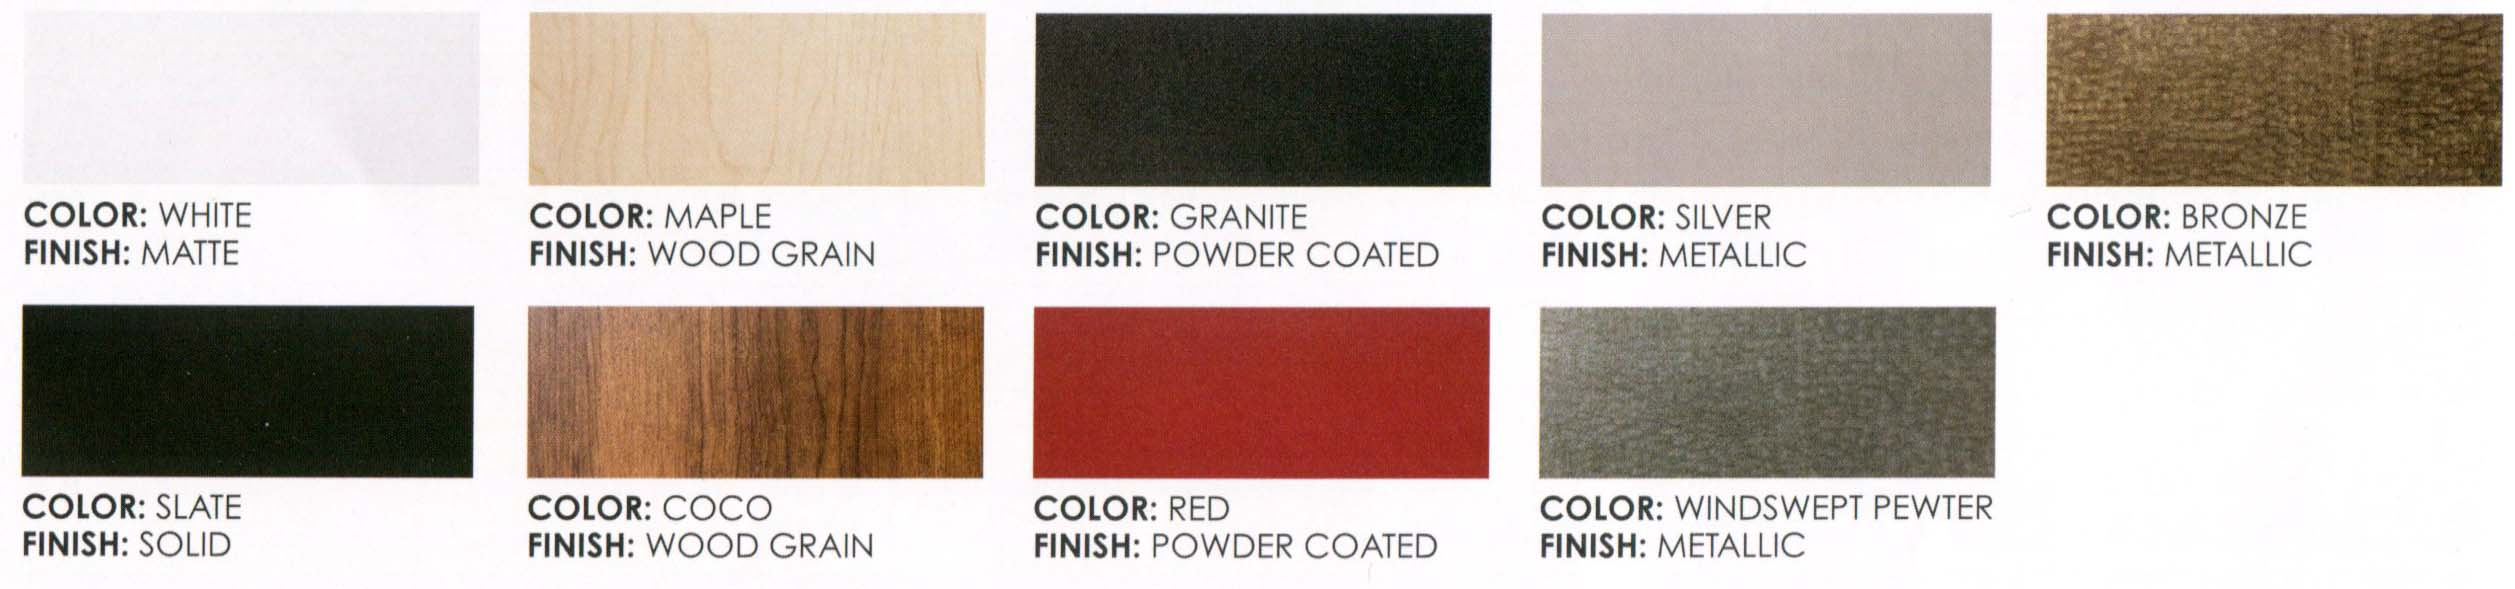 GARAGE CABINET COLORS and FINISHES